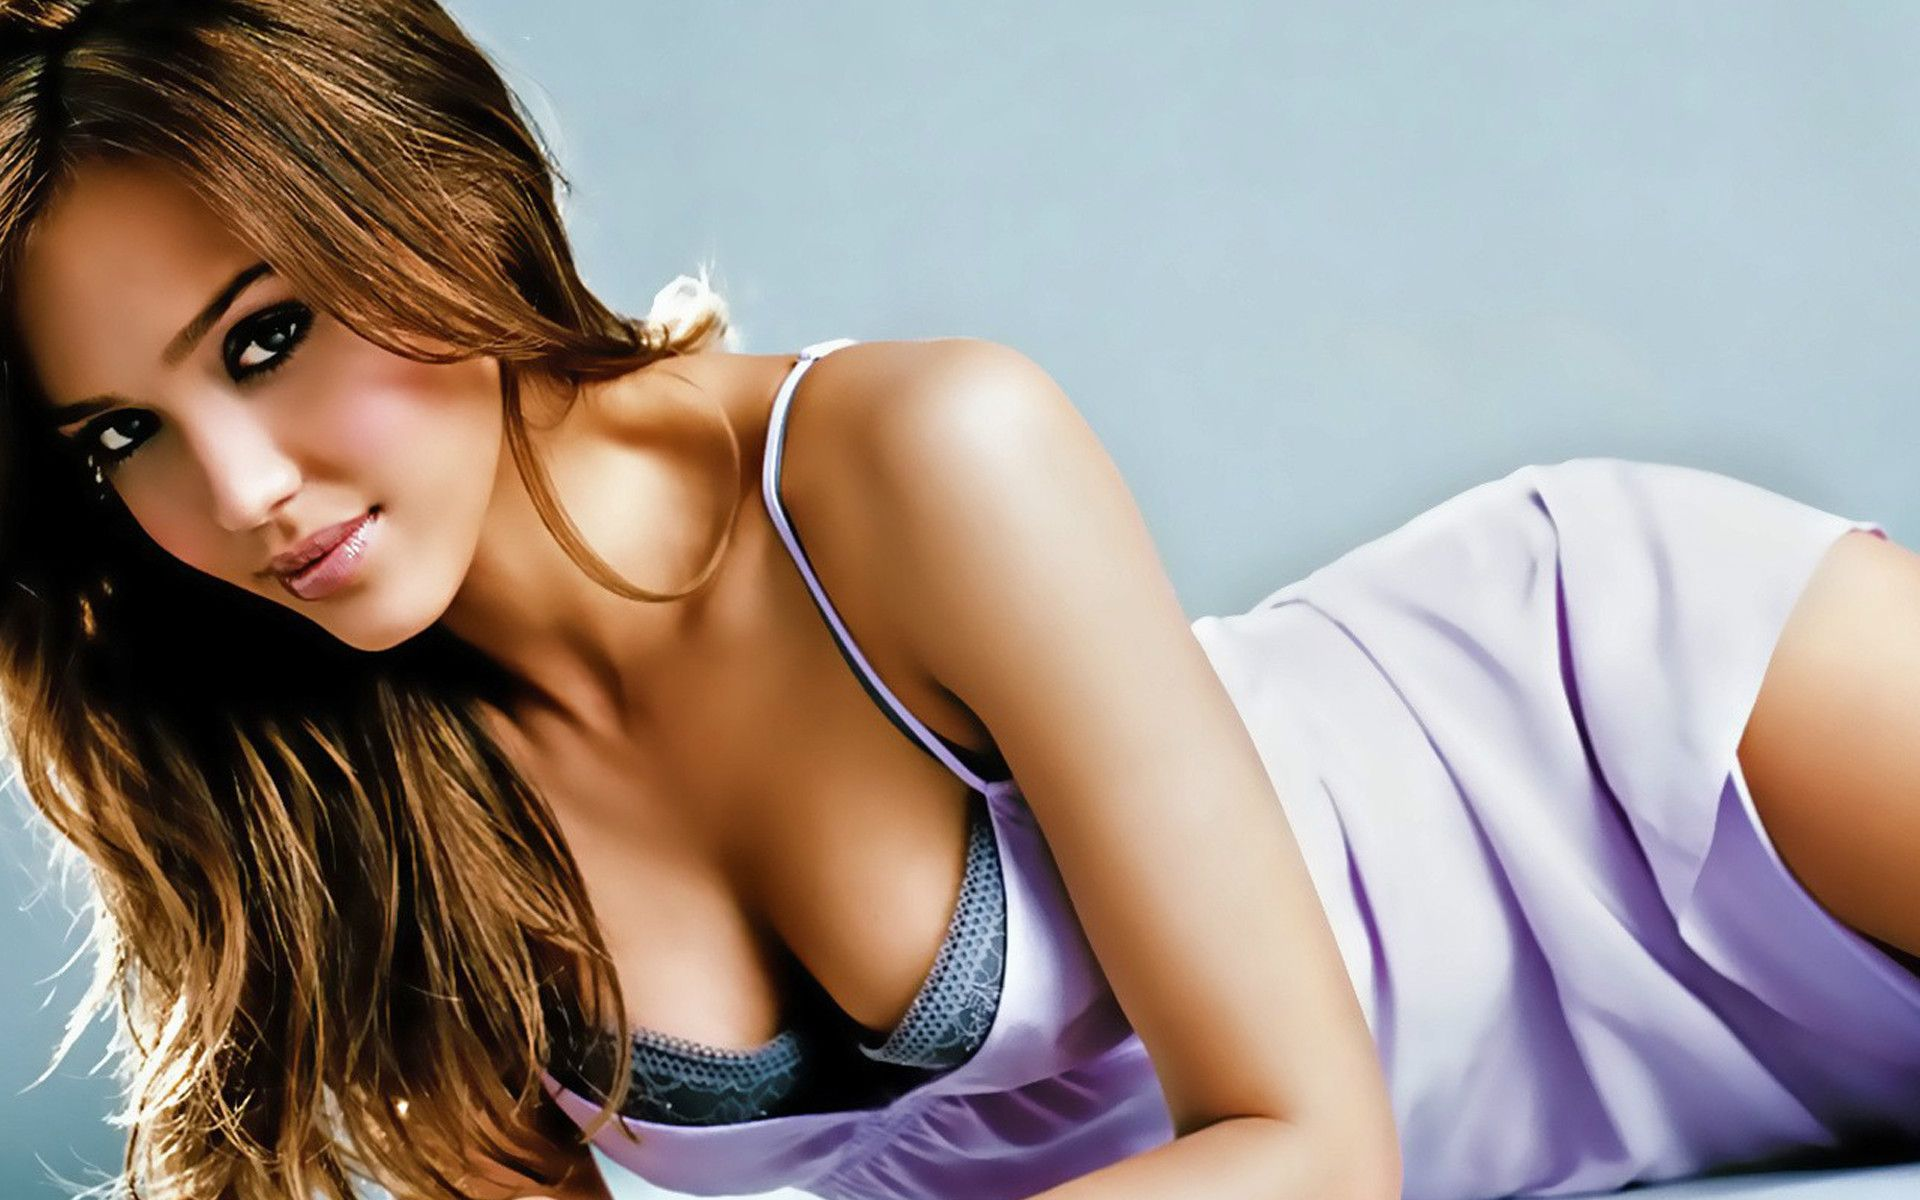 jessica-alba-of-hot-sex-adult-literacy-material